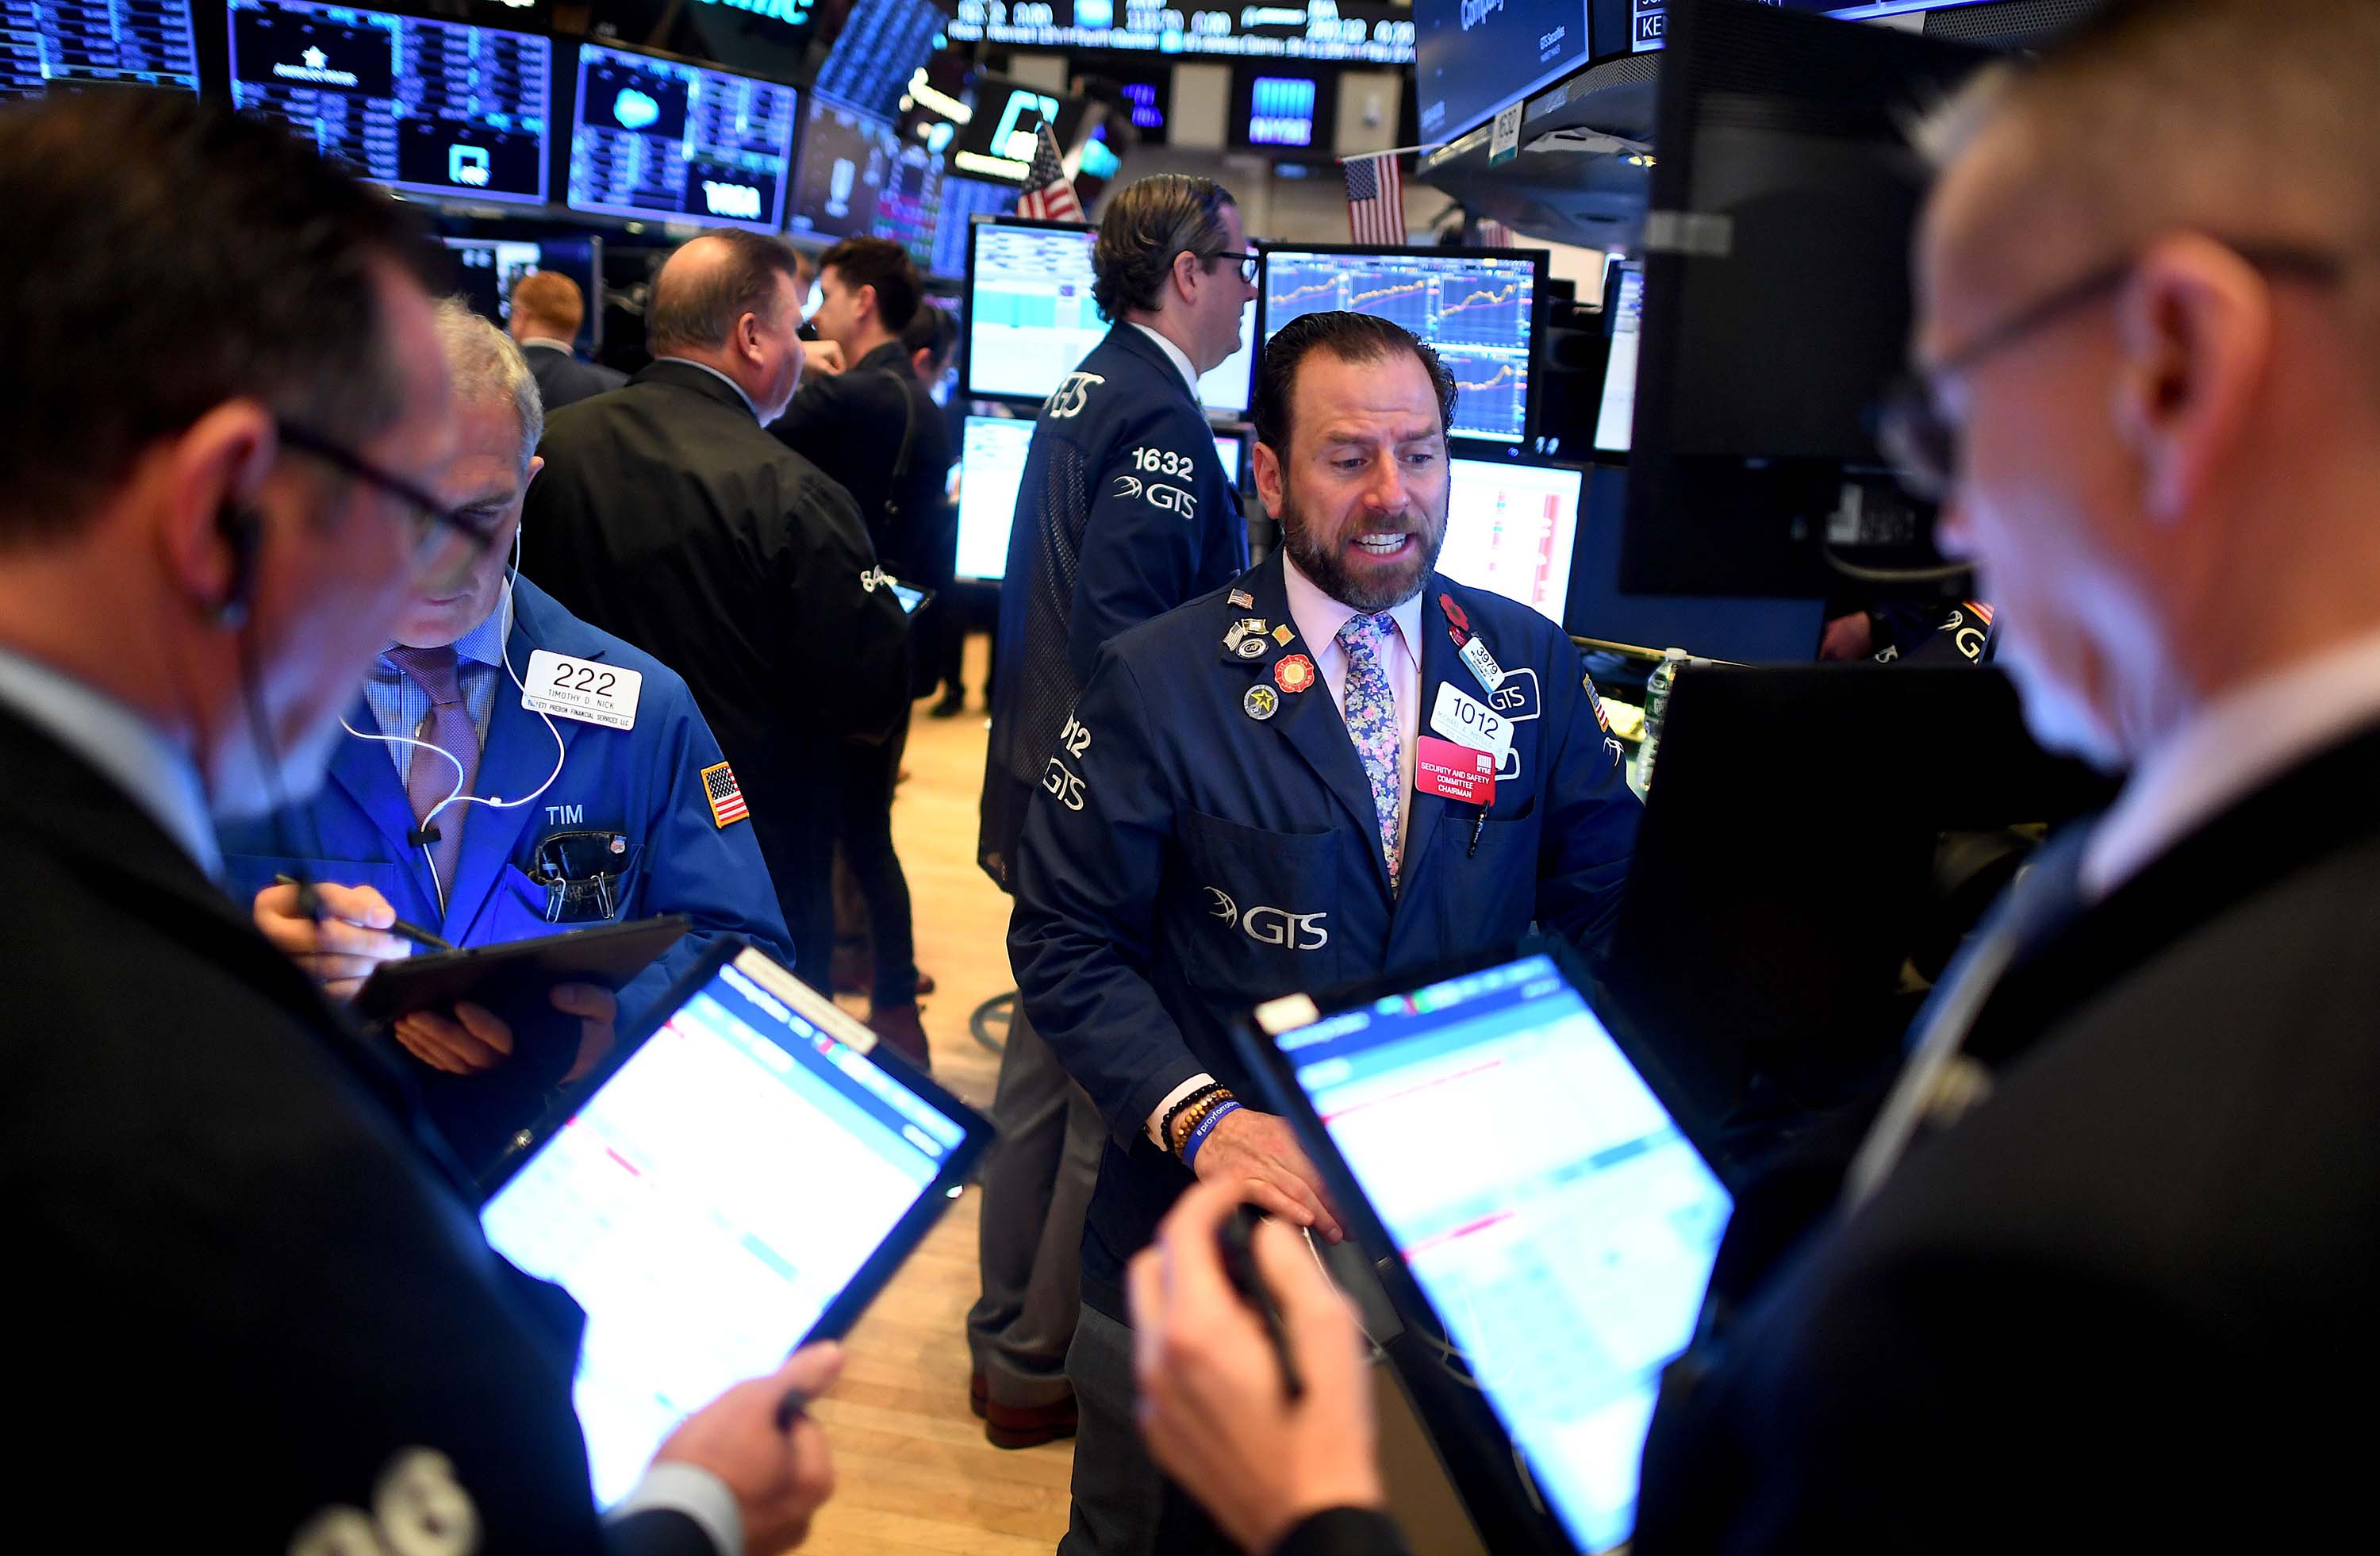 Traders work during the opening bell at the New York Stock Exchange on Thursday.